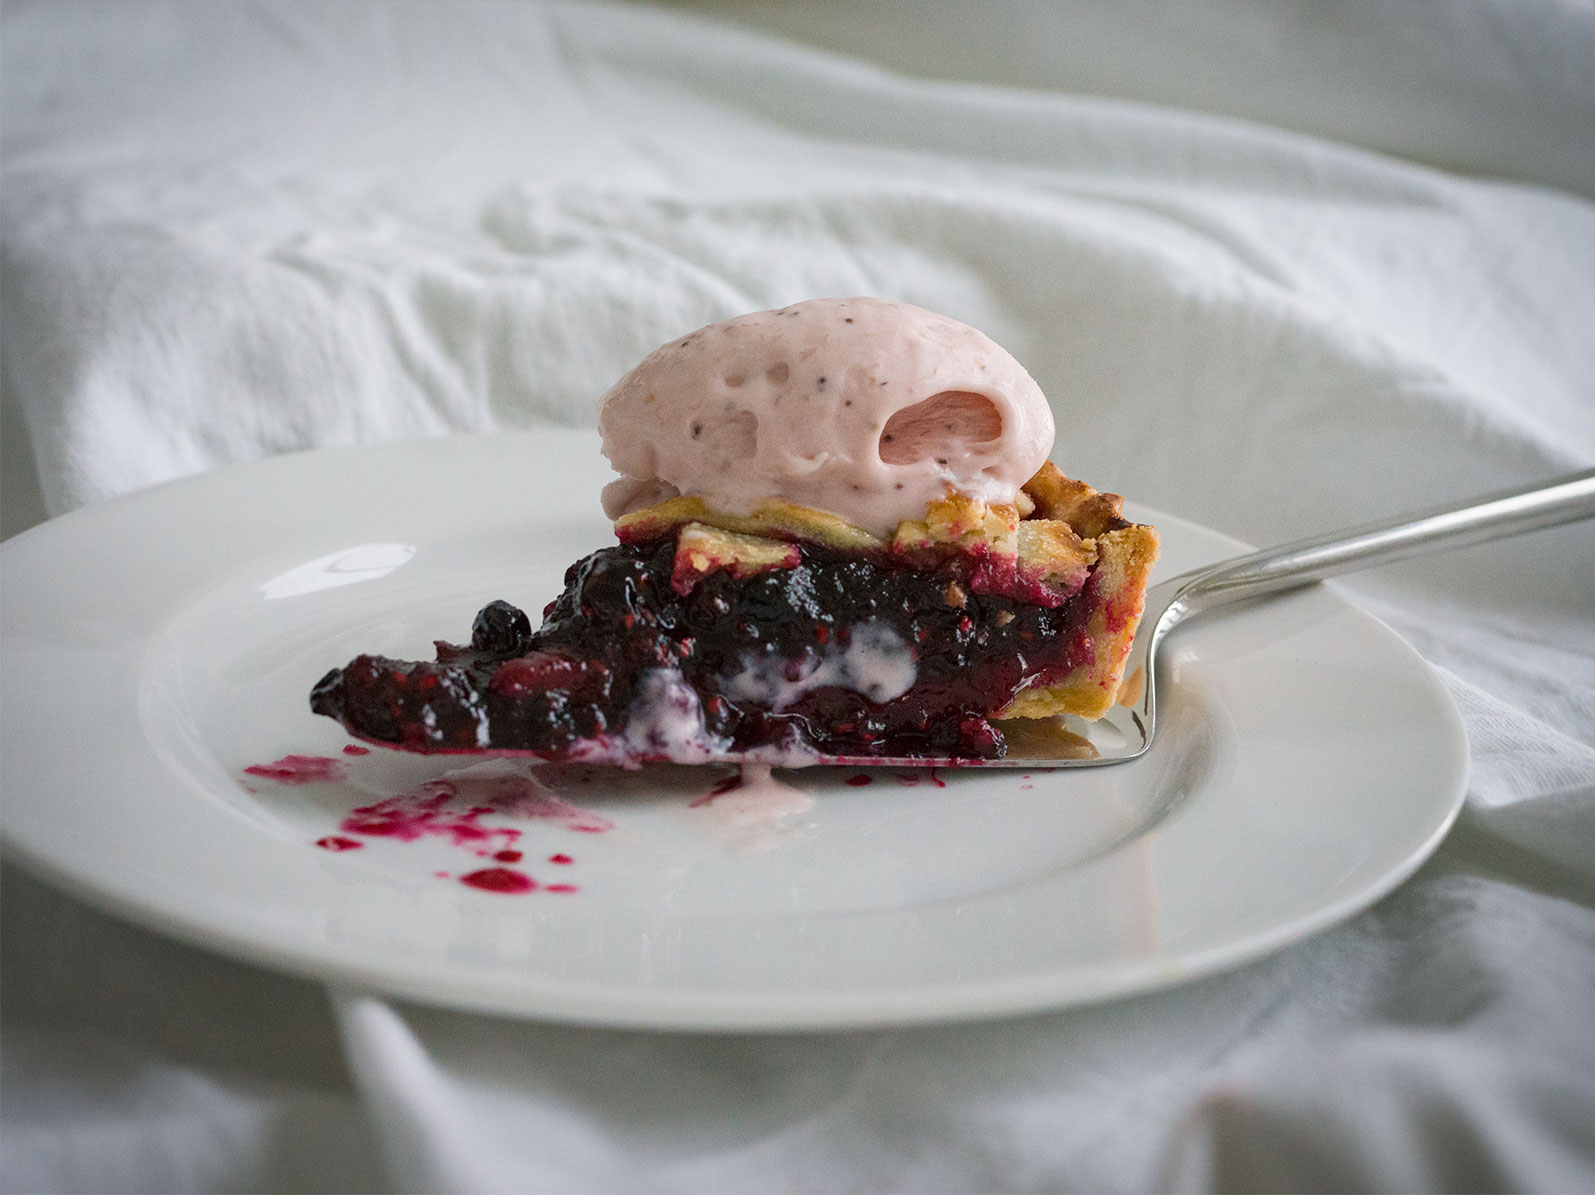 Summer Berry Tart, topped with Strawberry Ice-Cream